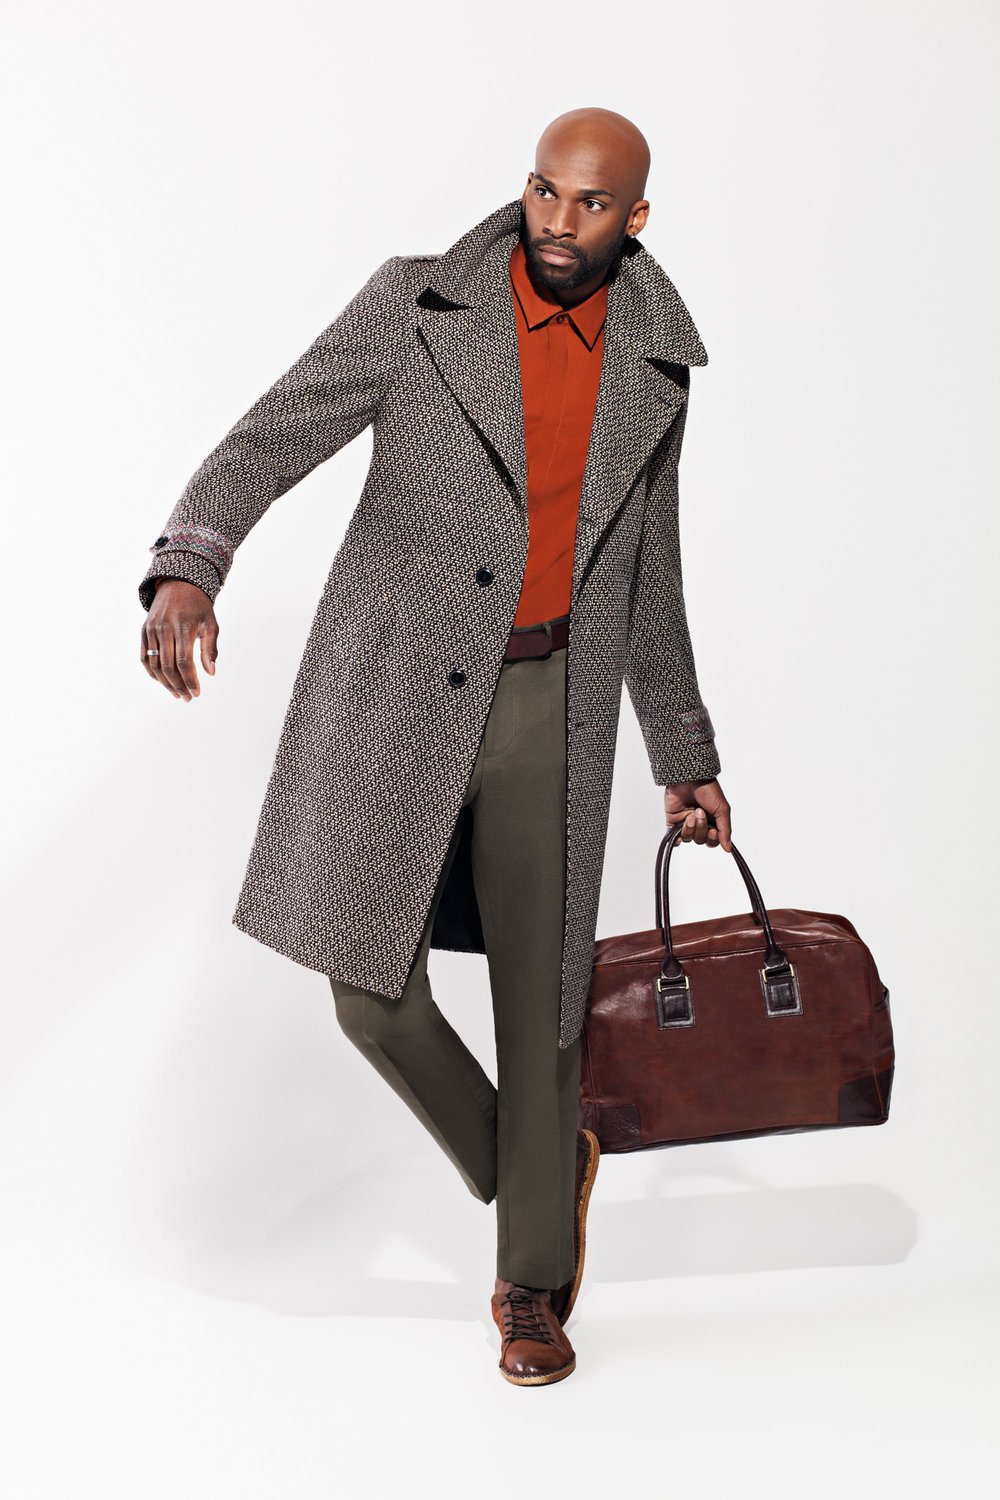 black-man-tweed-jacket-bag.jpg.jpg